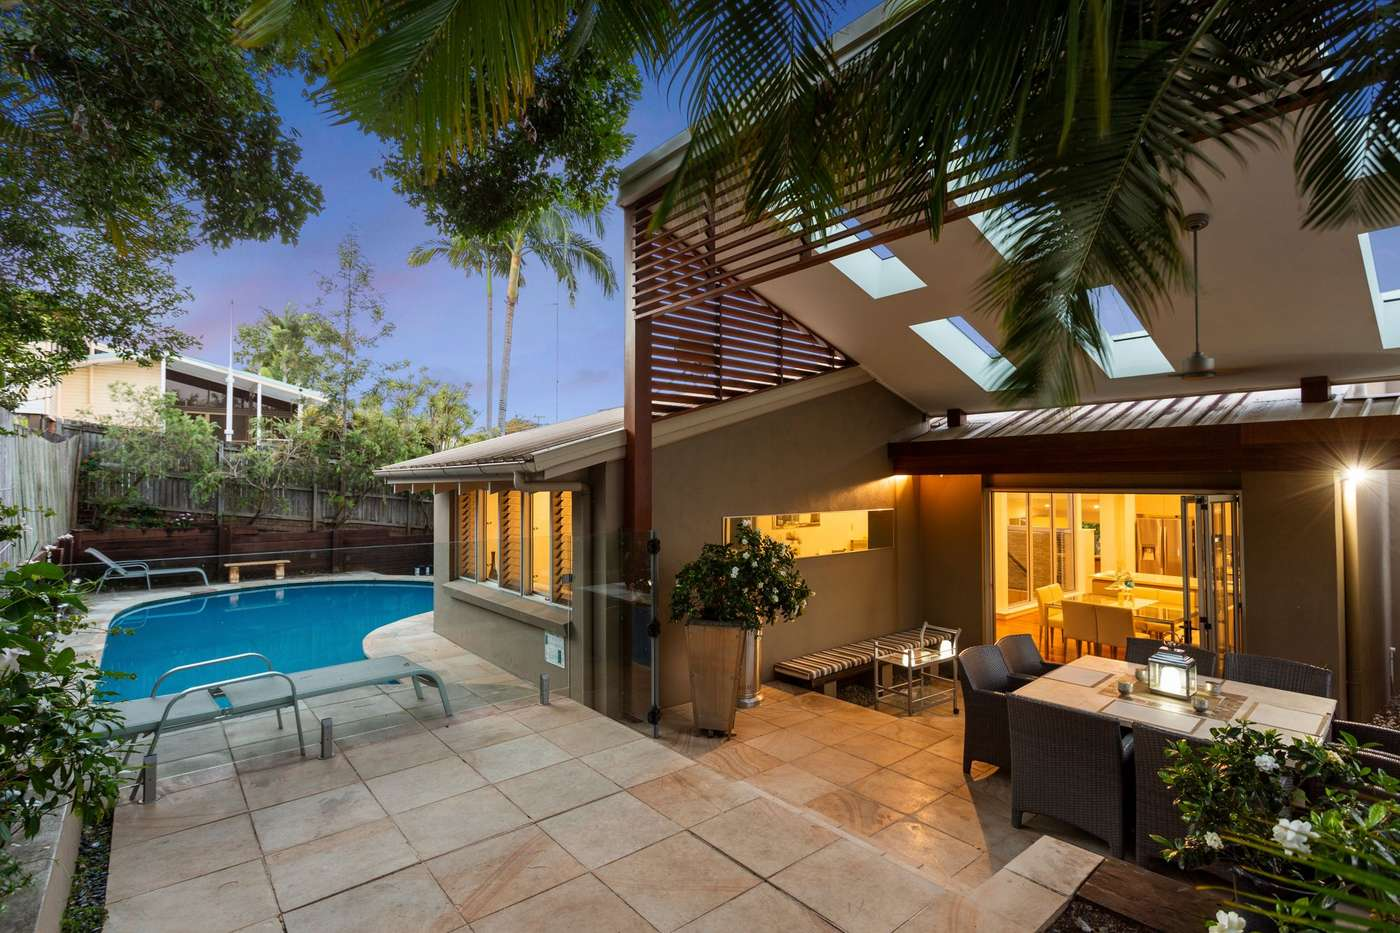 Main view of Homely house listing, 29 Toulambi Street, Noosa Heads, QLD 4567